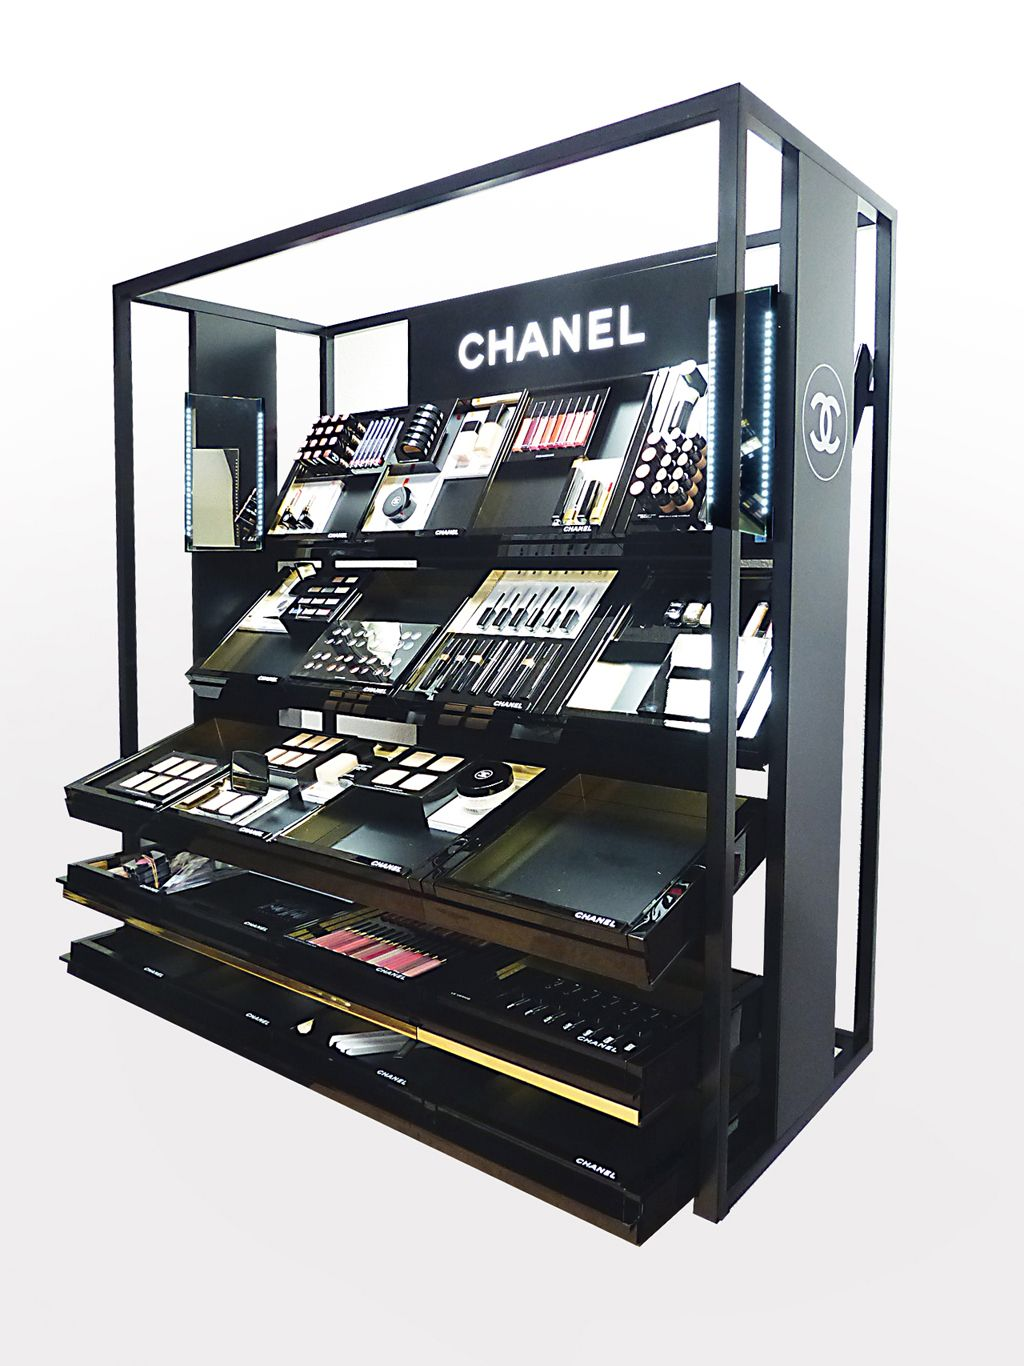 popai awards paris 2016 mini stand de comptoir chanel